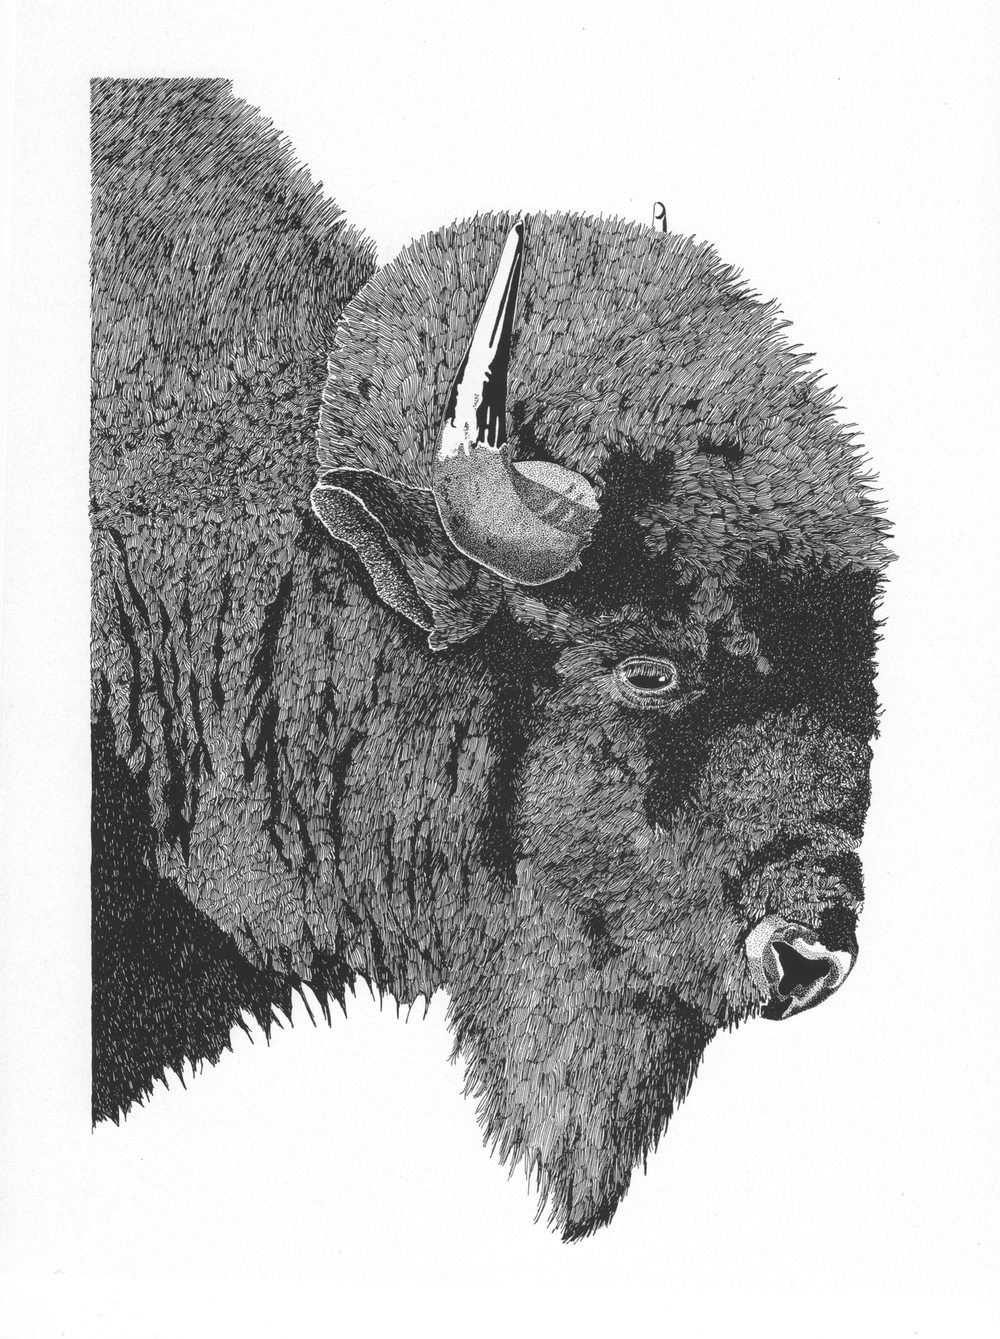 Bison Bull • © Fred Montague $2400 • Original • Image 20 x 24 • mat 28 x 30  Status: available